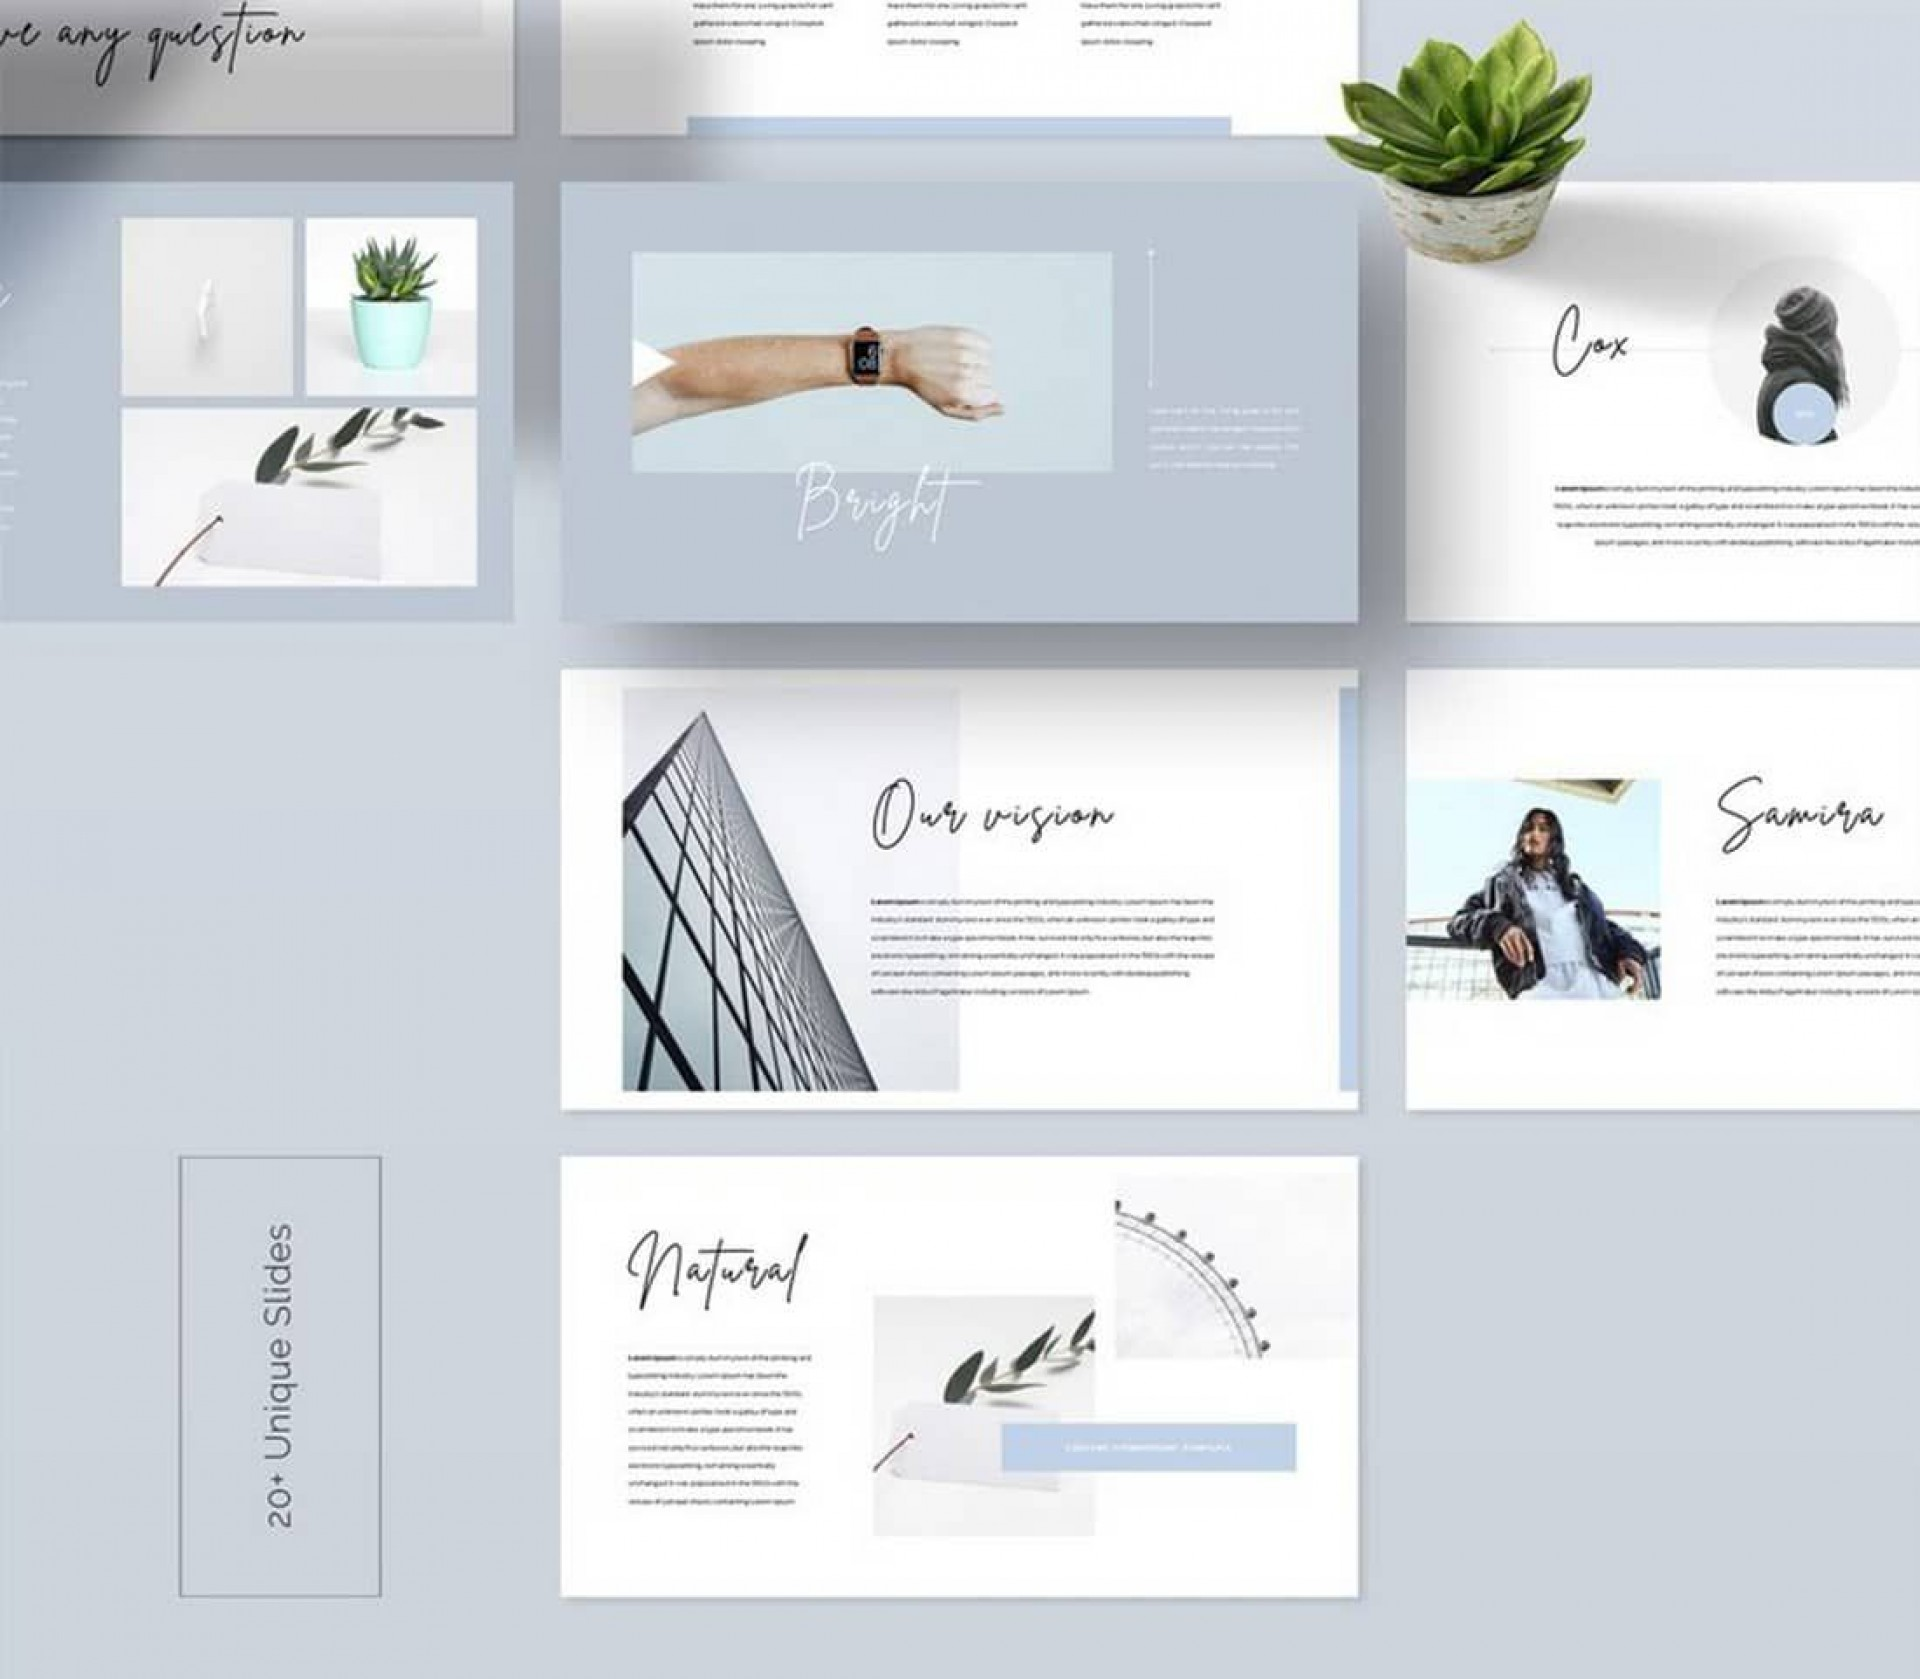 008 Stunning Free Photo Book Template Idea  Templates1920